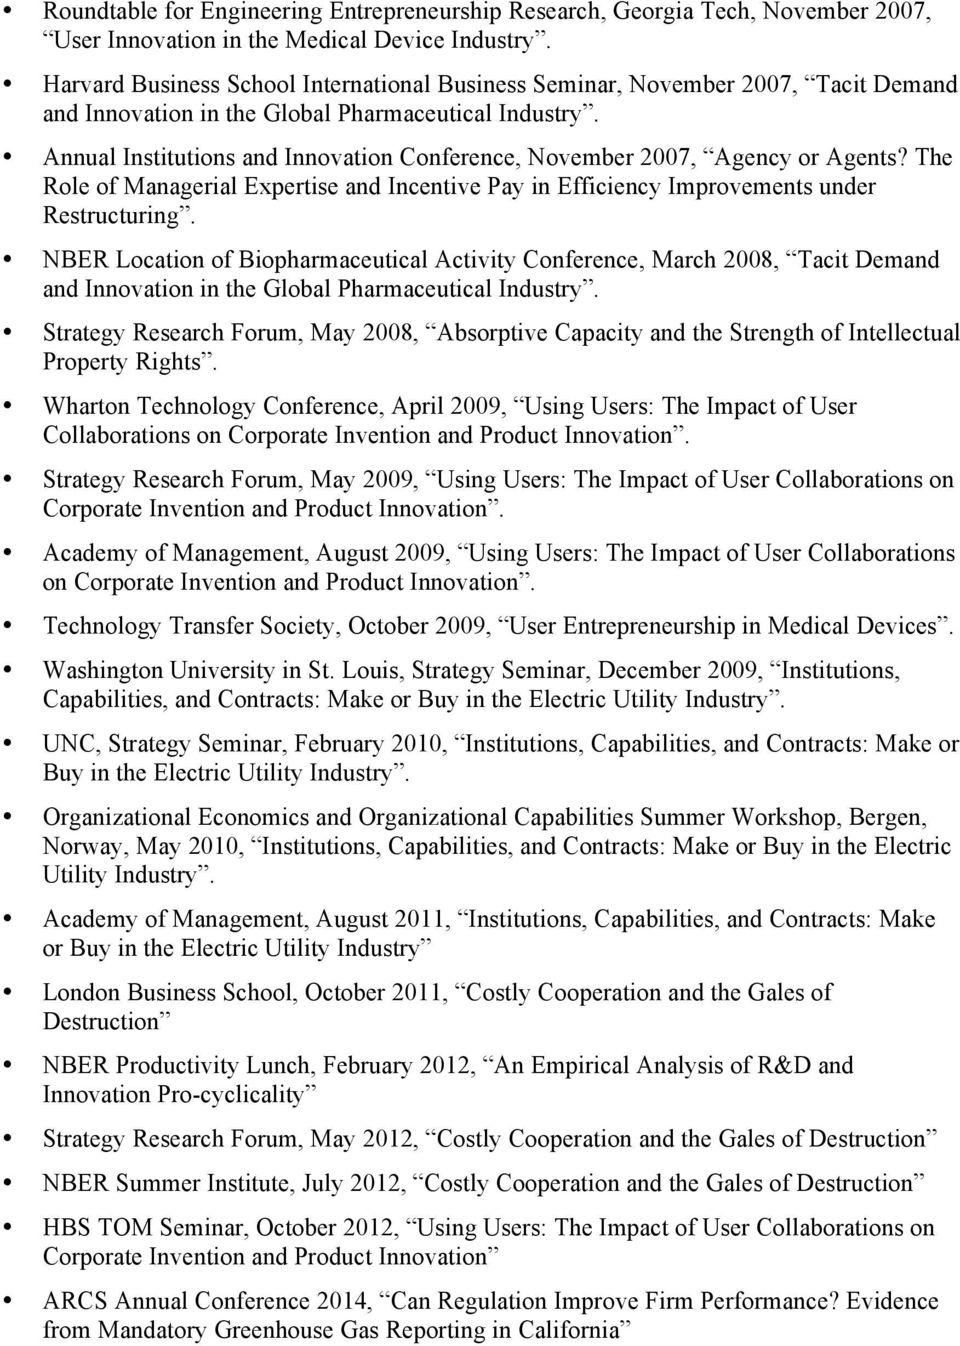 Annual Institutions and Innovation Conference, November 2007, Agency or Agents? The Role of Managerial Expertise and Incentive Pay in Efficiency Improvements under Restructuring.